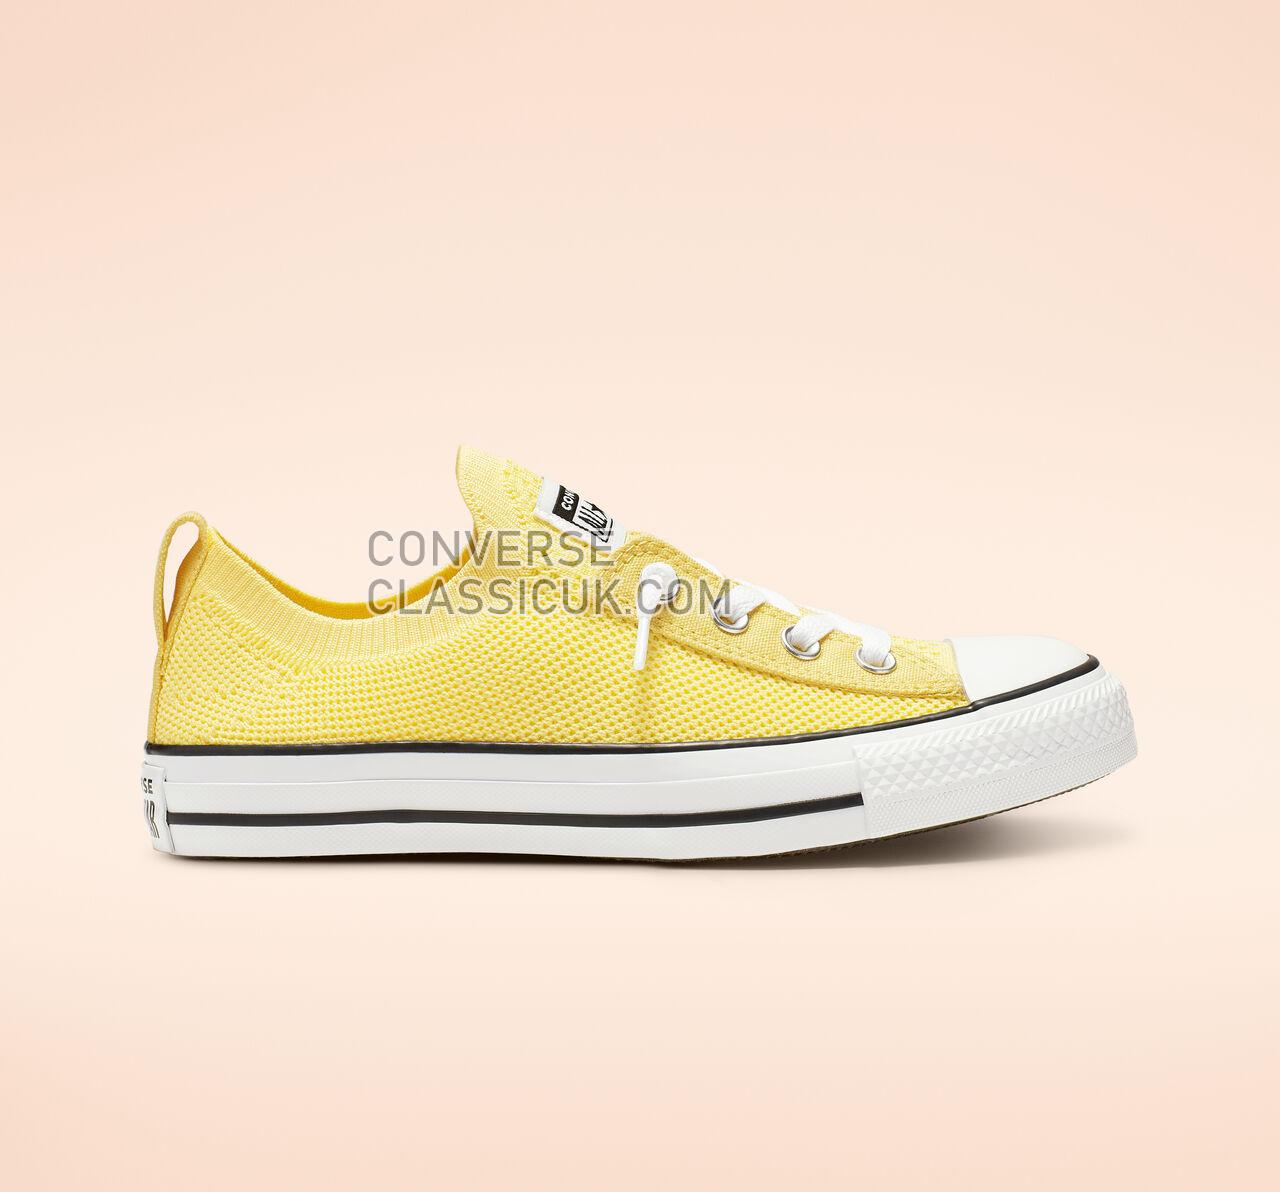 Converse Chuck Taylor All Star Shoreline Knit Slip Womens 565488F Butter Yellow/White/Black Shoes